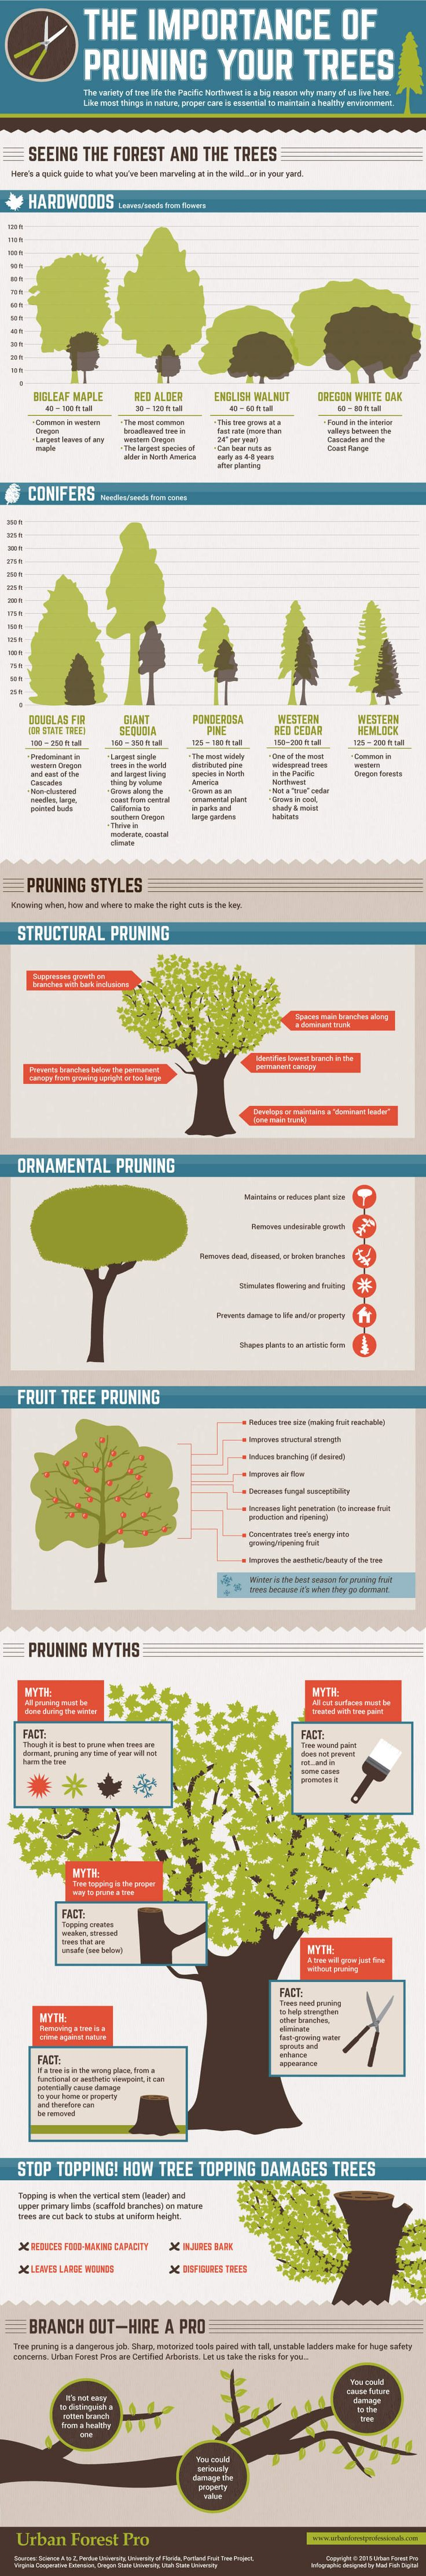 The Importance of Pruning Your Trees